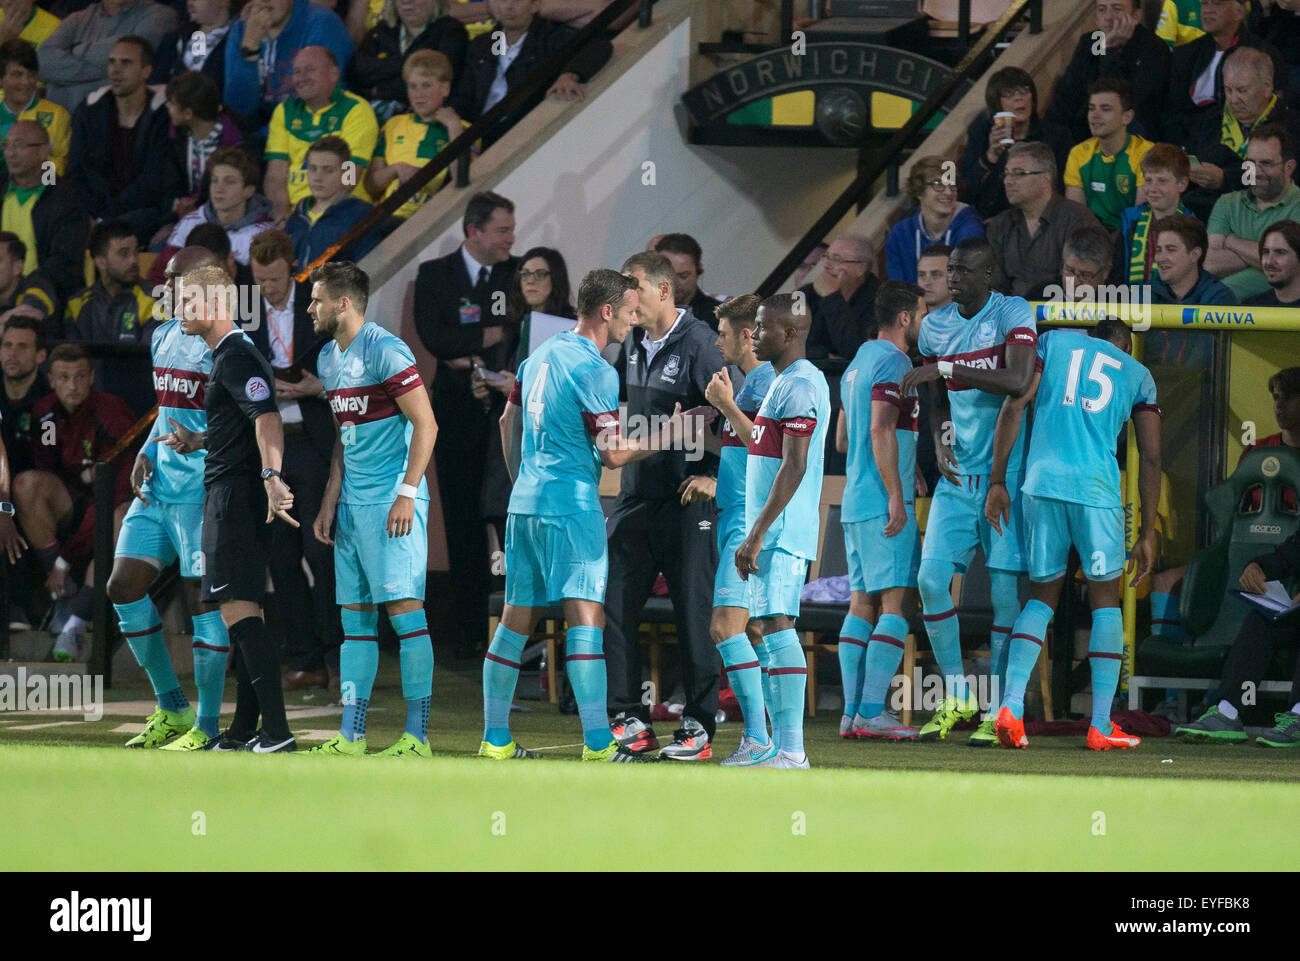 Norwich, UK. 28th July, 2015. Pre Season Friendly between Norwich City and West Ham United. West Ham make 9 substitutions - Stock Image